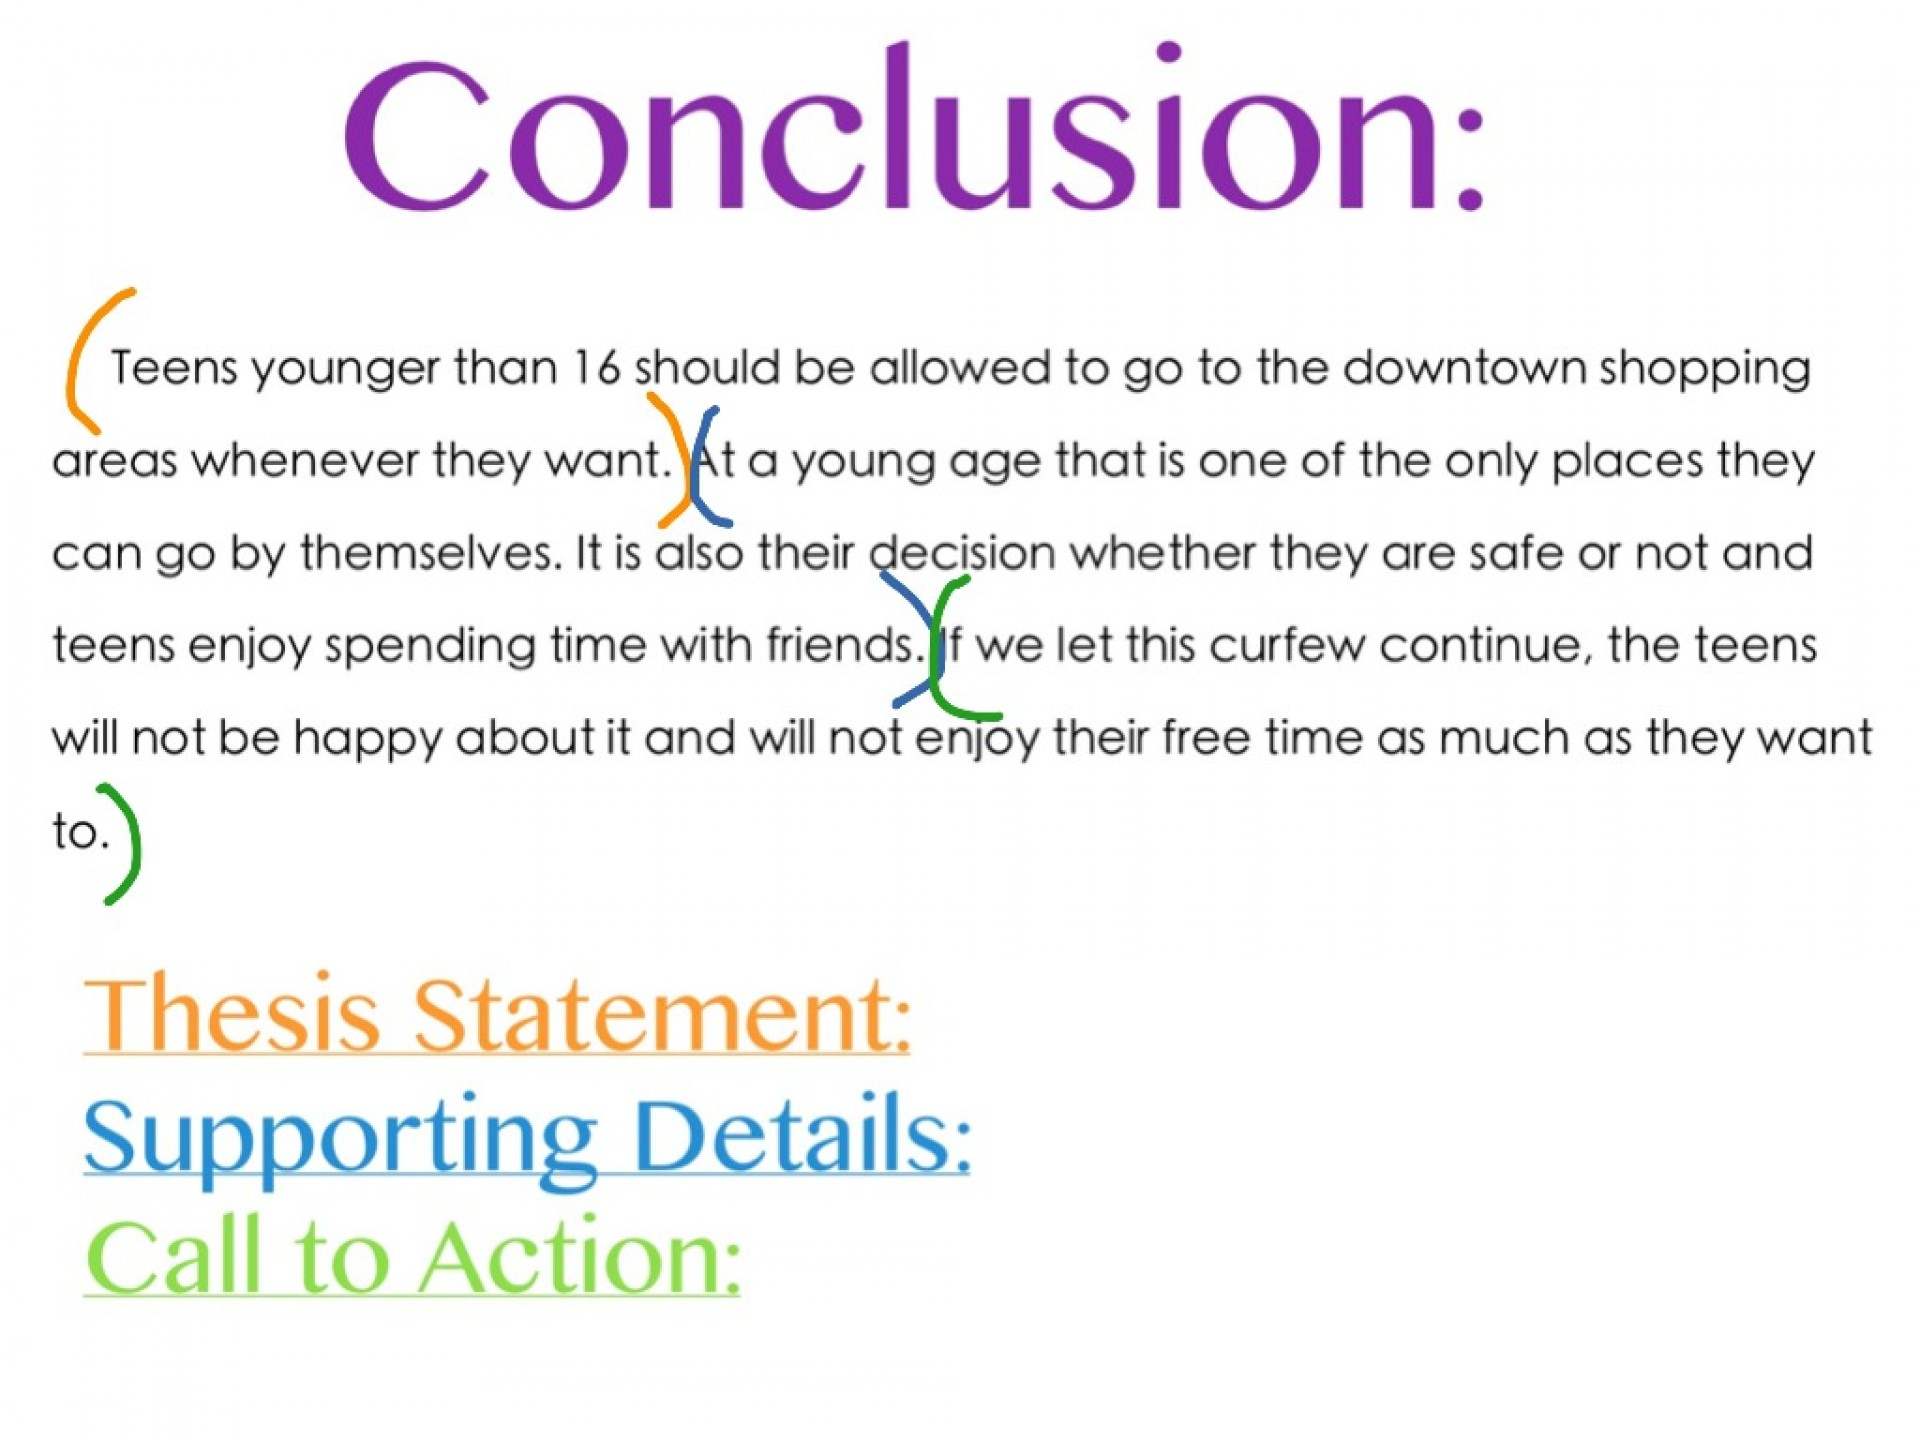 001 Good Conclusion For An Essay Example Wondrous A Concluding Sentence Macbeth About Yourself 1920